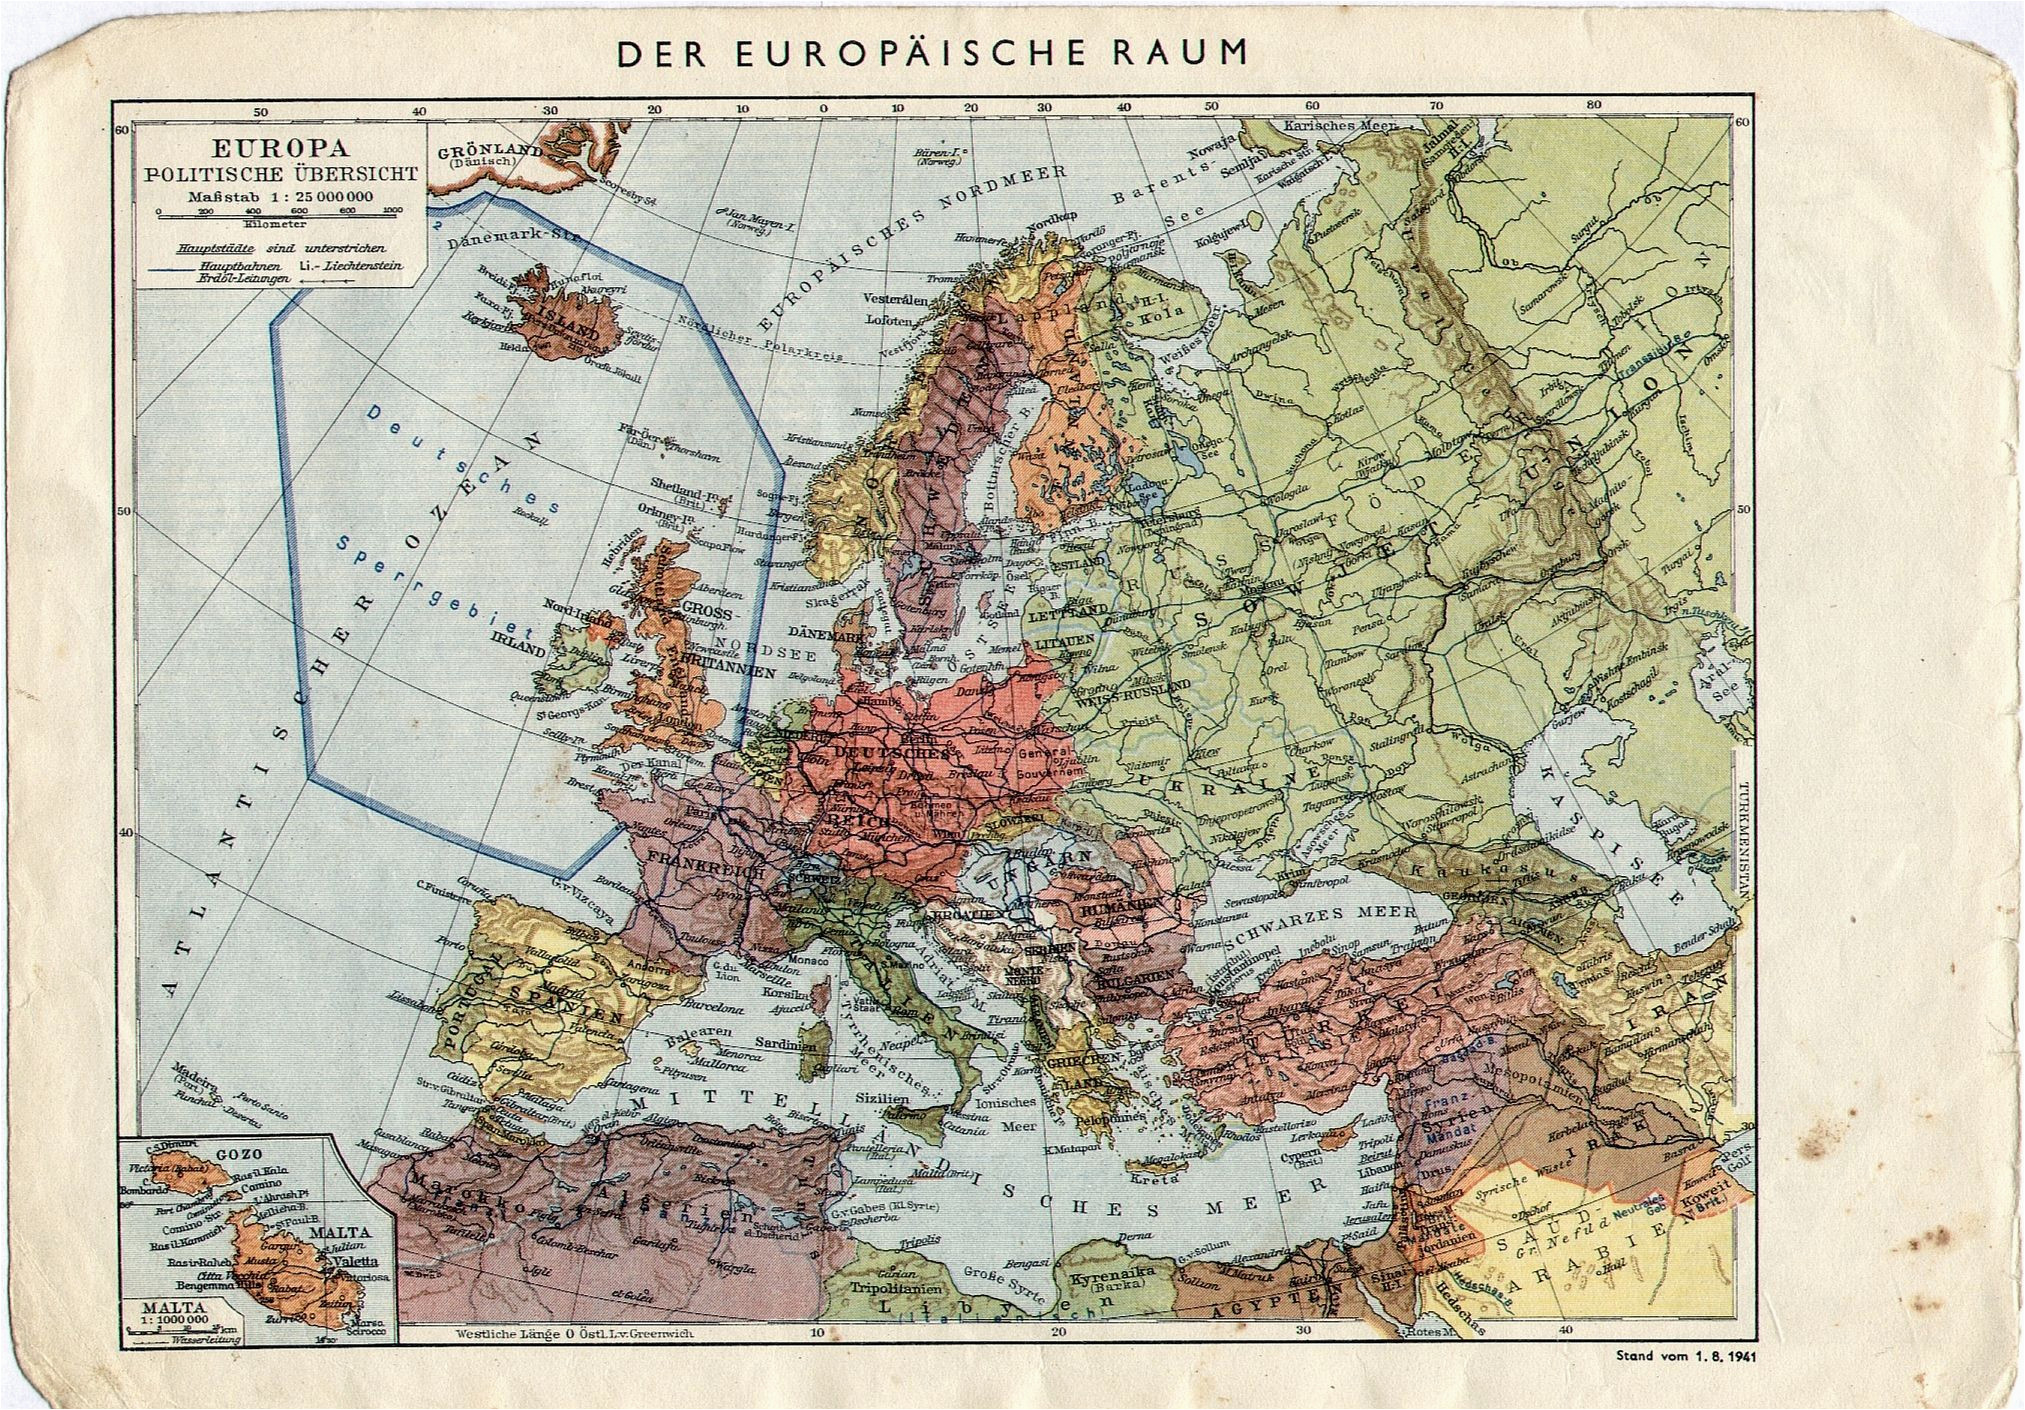 1941 german map of europe with a forbidden zone around uk